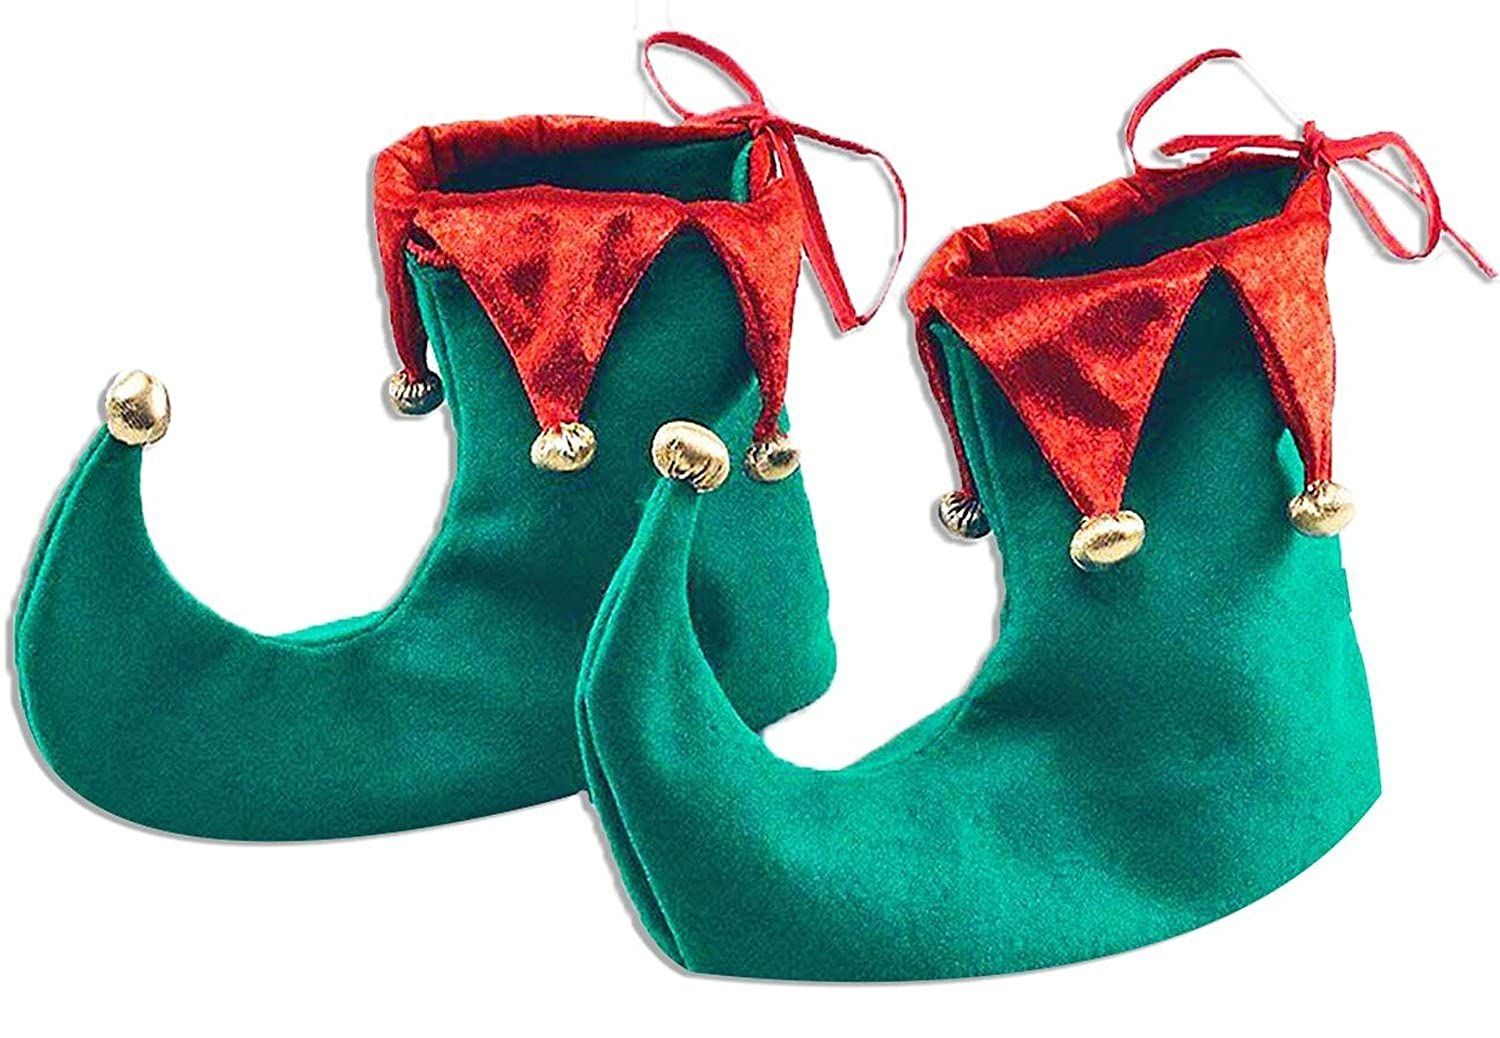 Sofias Closet Adults Deluxe Elf Elves Shoe Covers Novelty Red Green Curly Toe Boots Santa